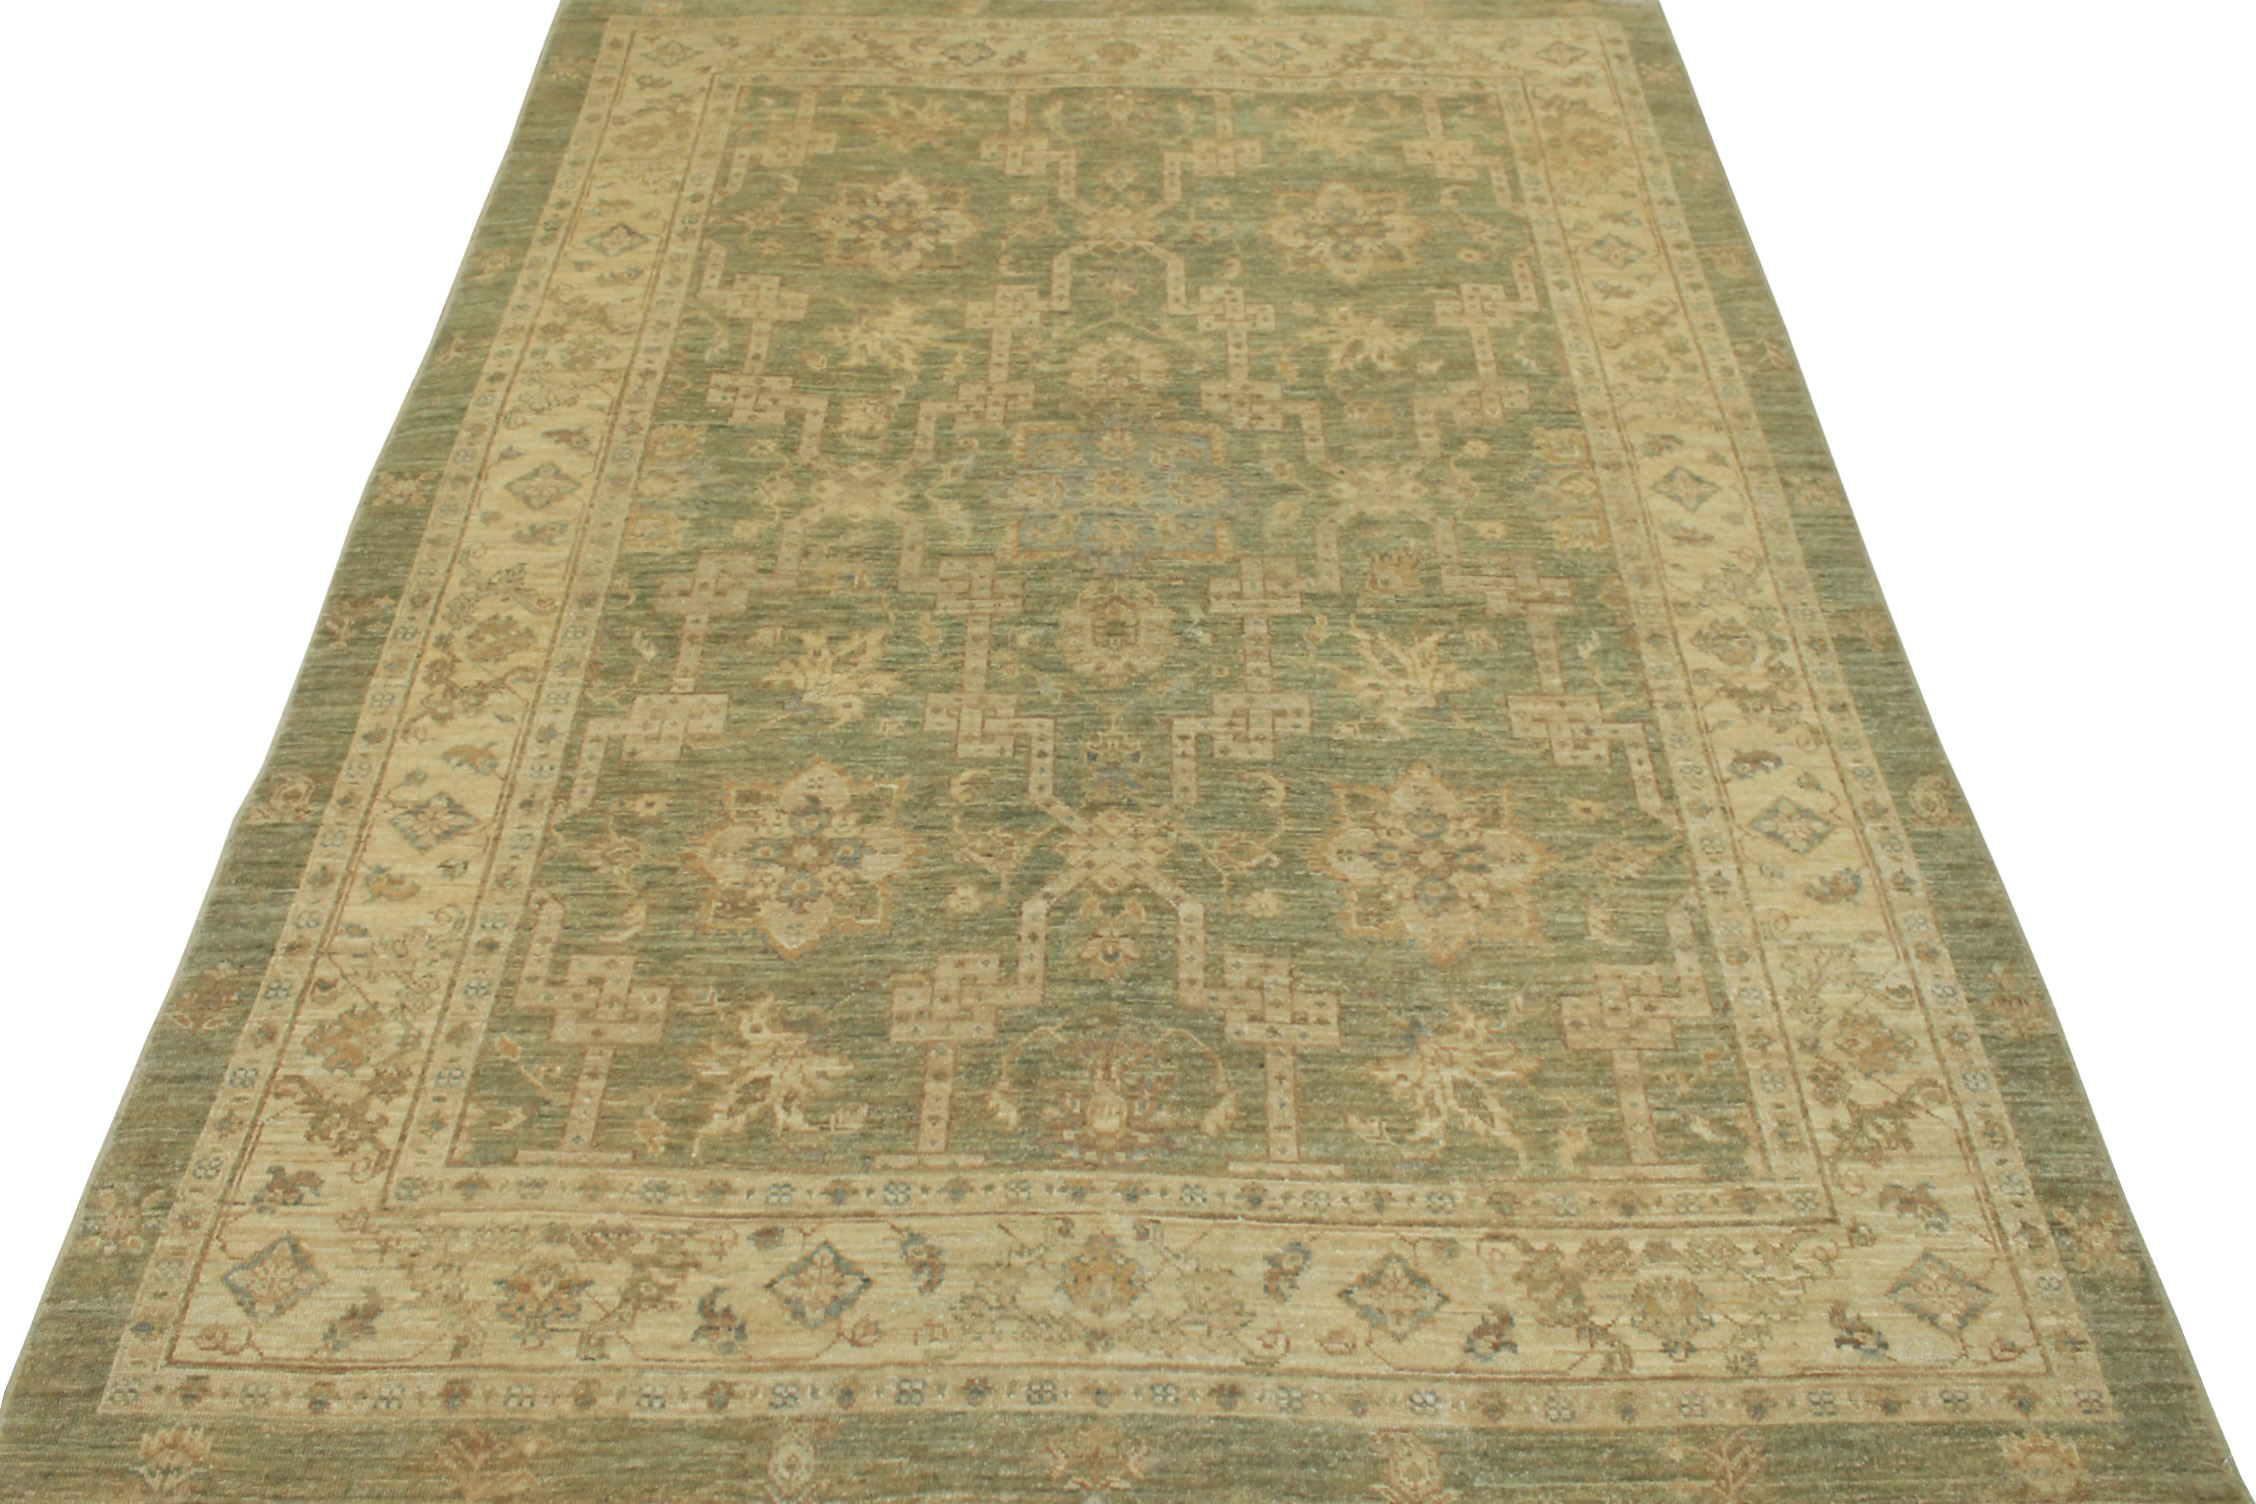 5x7/8 Peshawar Hand Knotted Wool Area Rug - MR013311